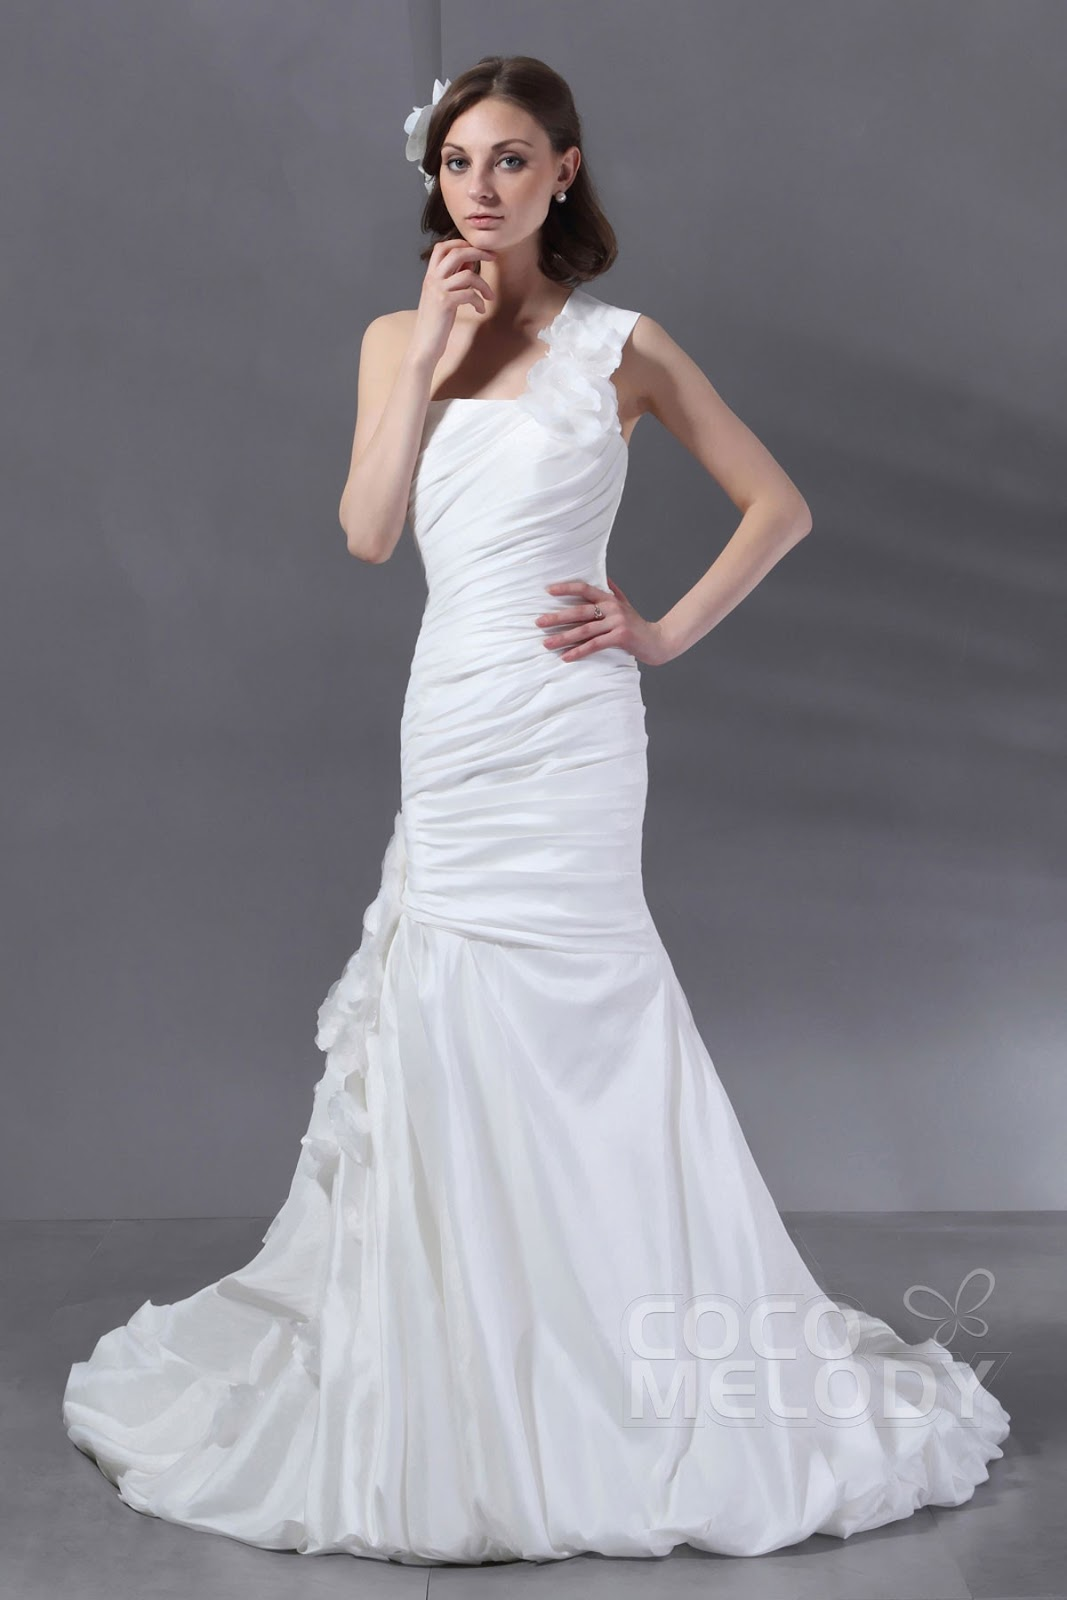 newblog: What sort of wedding dresses fit fat wedding brides